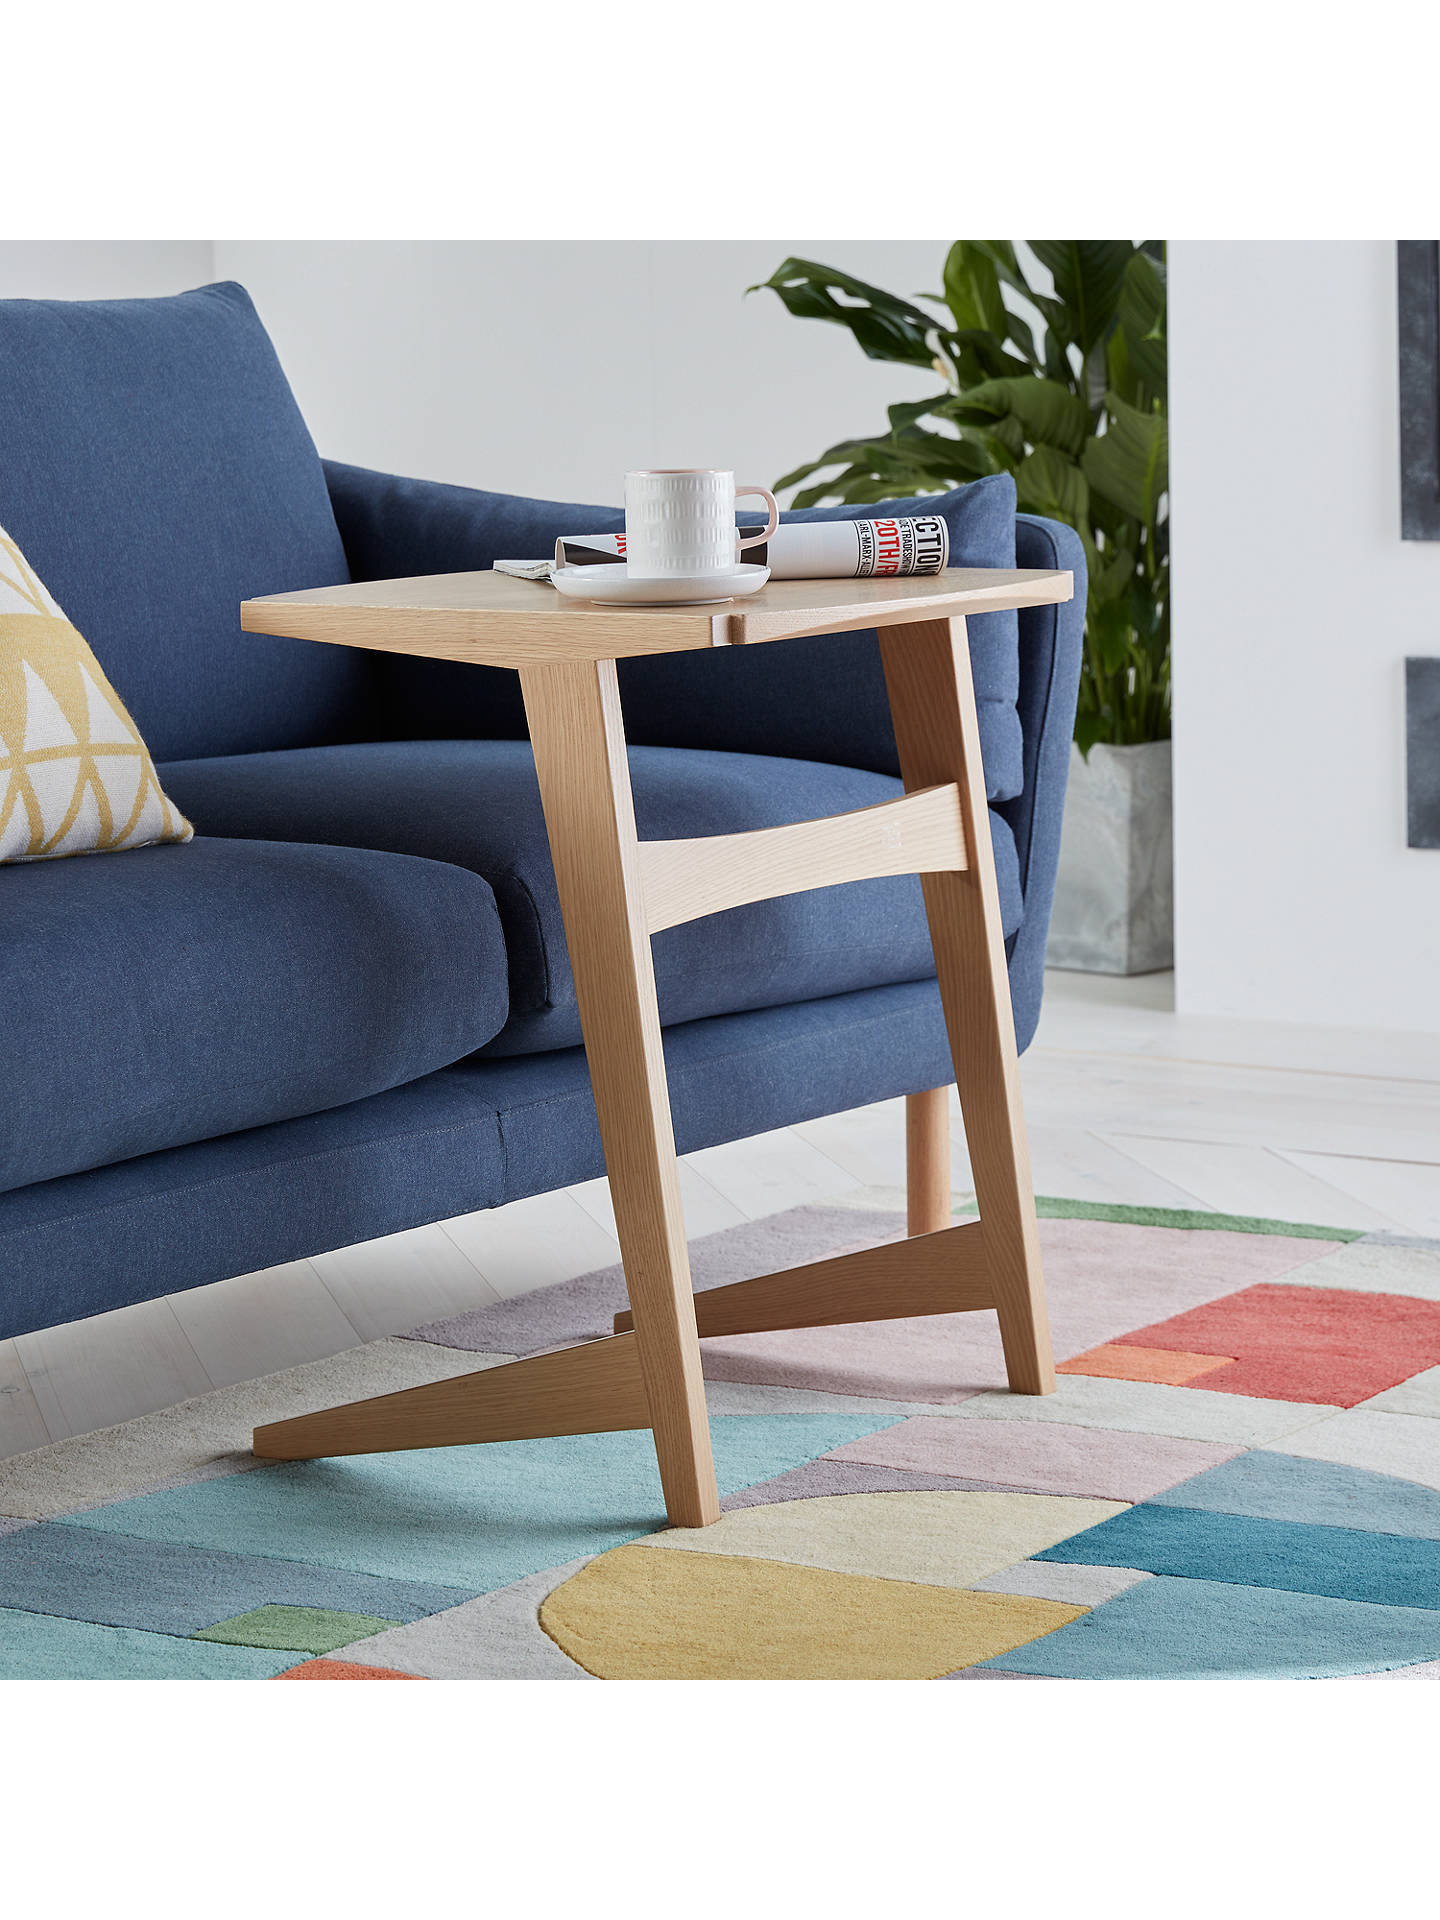 Wondrous John Lewis Partners Duhrer Sofa Side Table Ibusinesslaw Wood Chair Design Ideas Ibusinesslaworg